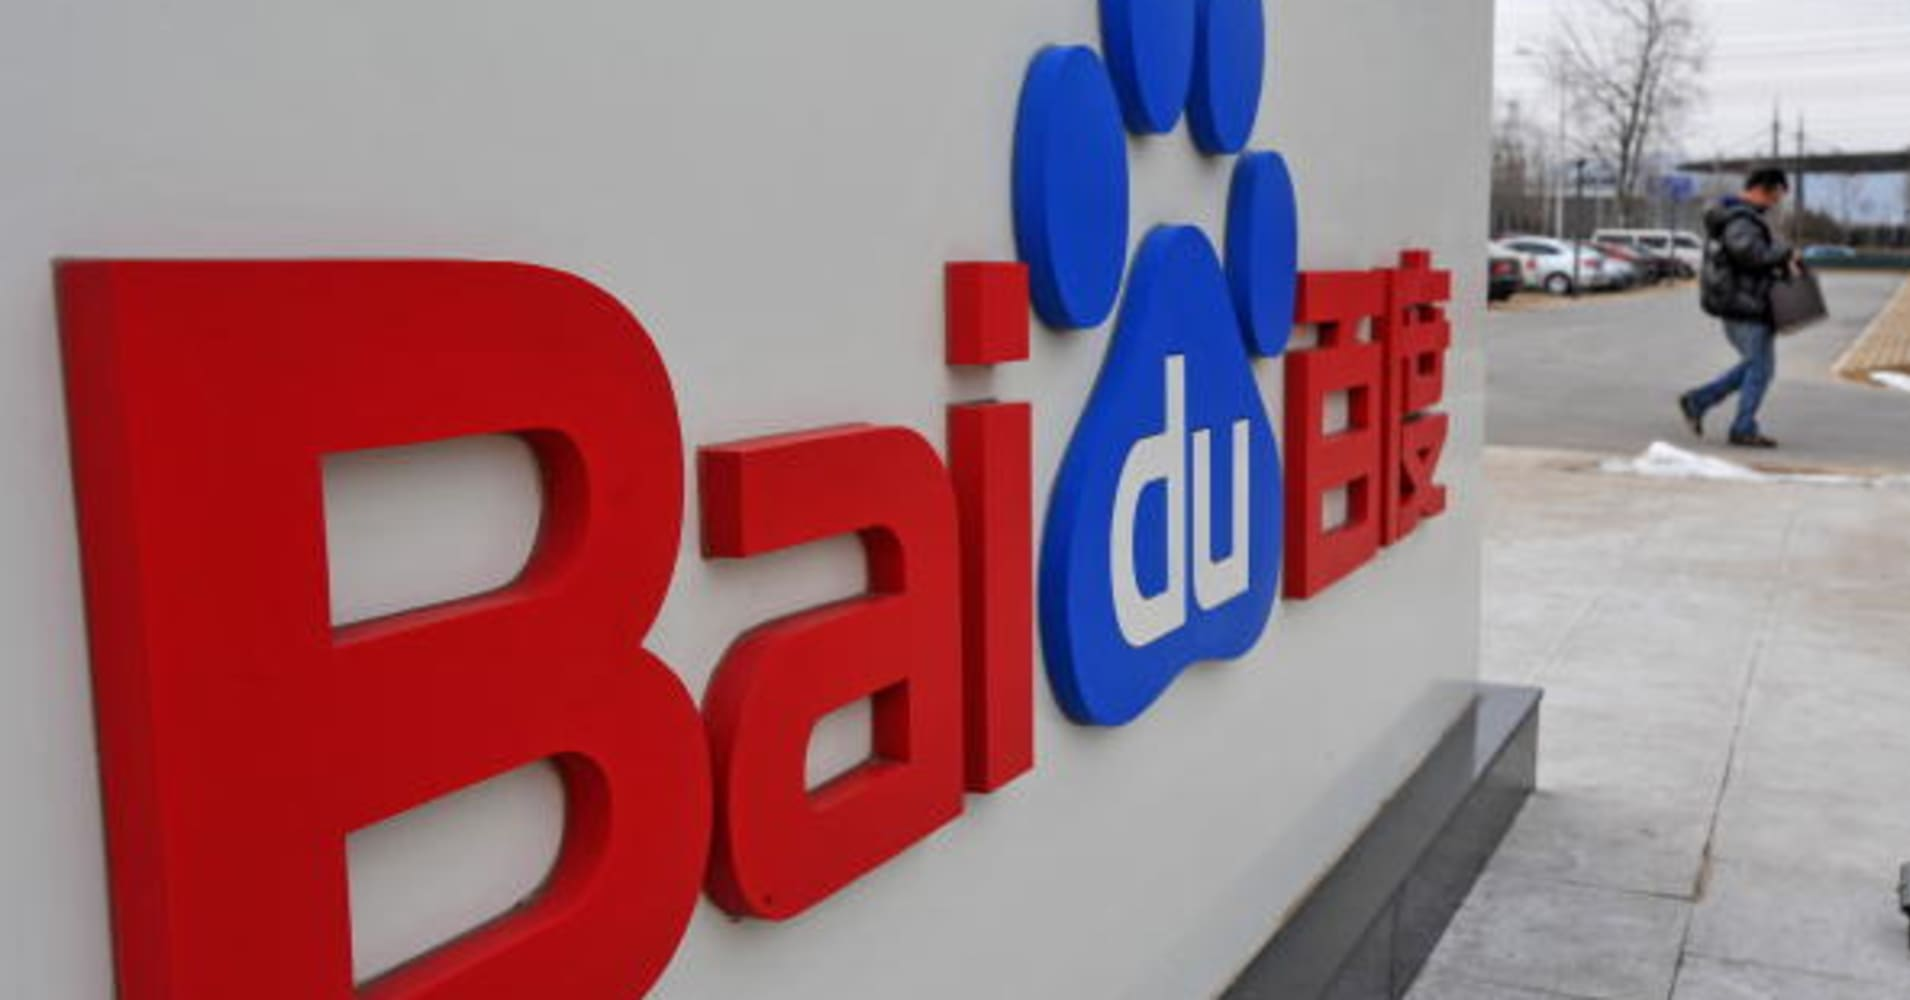 Chinese search giant Baidu beats on advertising sales but streaming costs surge